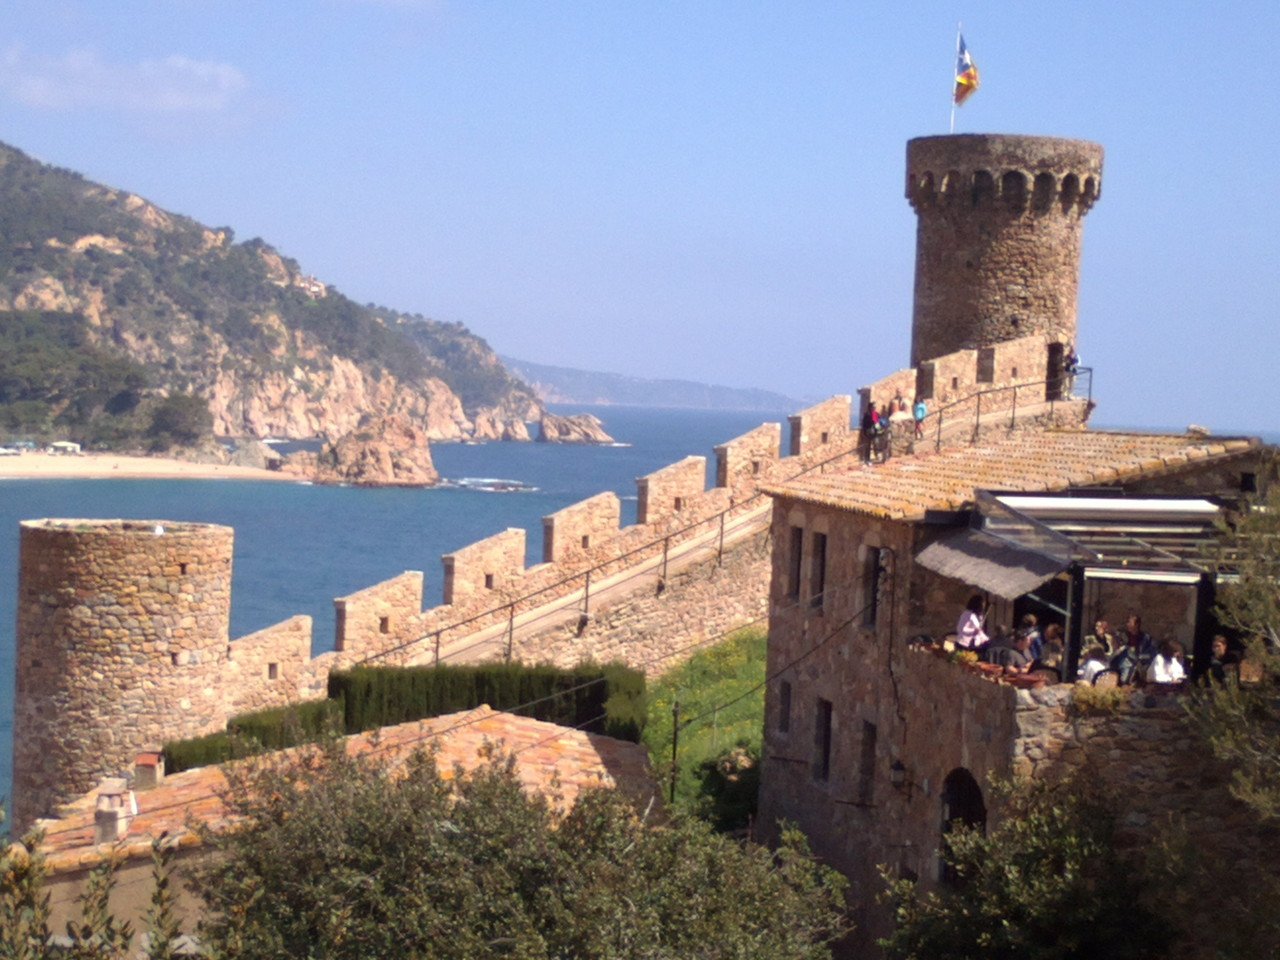 Beautiful views from the castle of Tossa